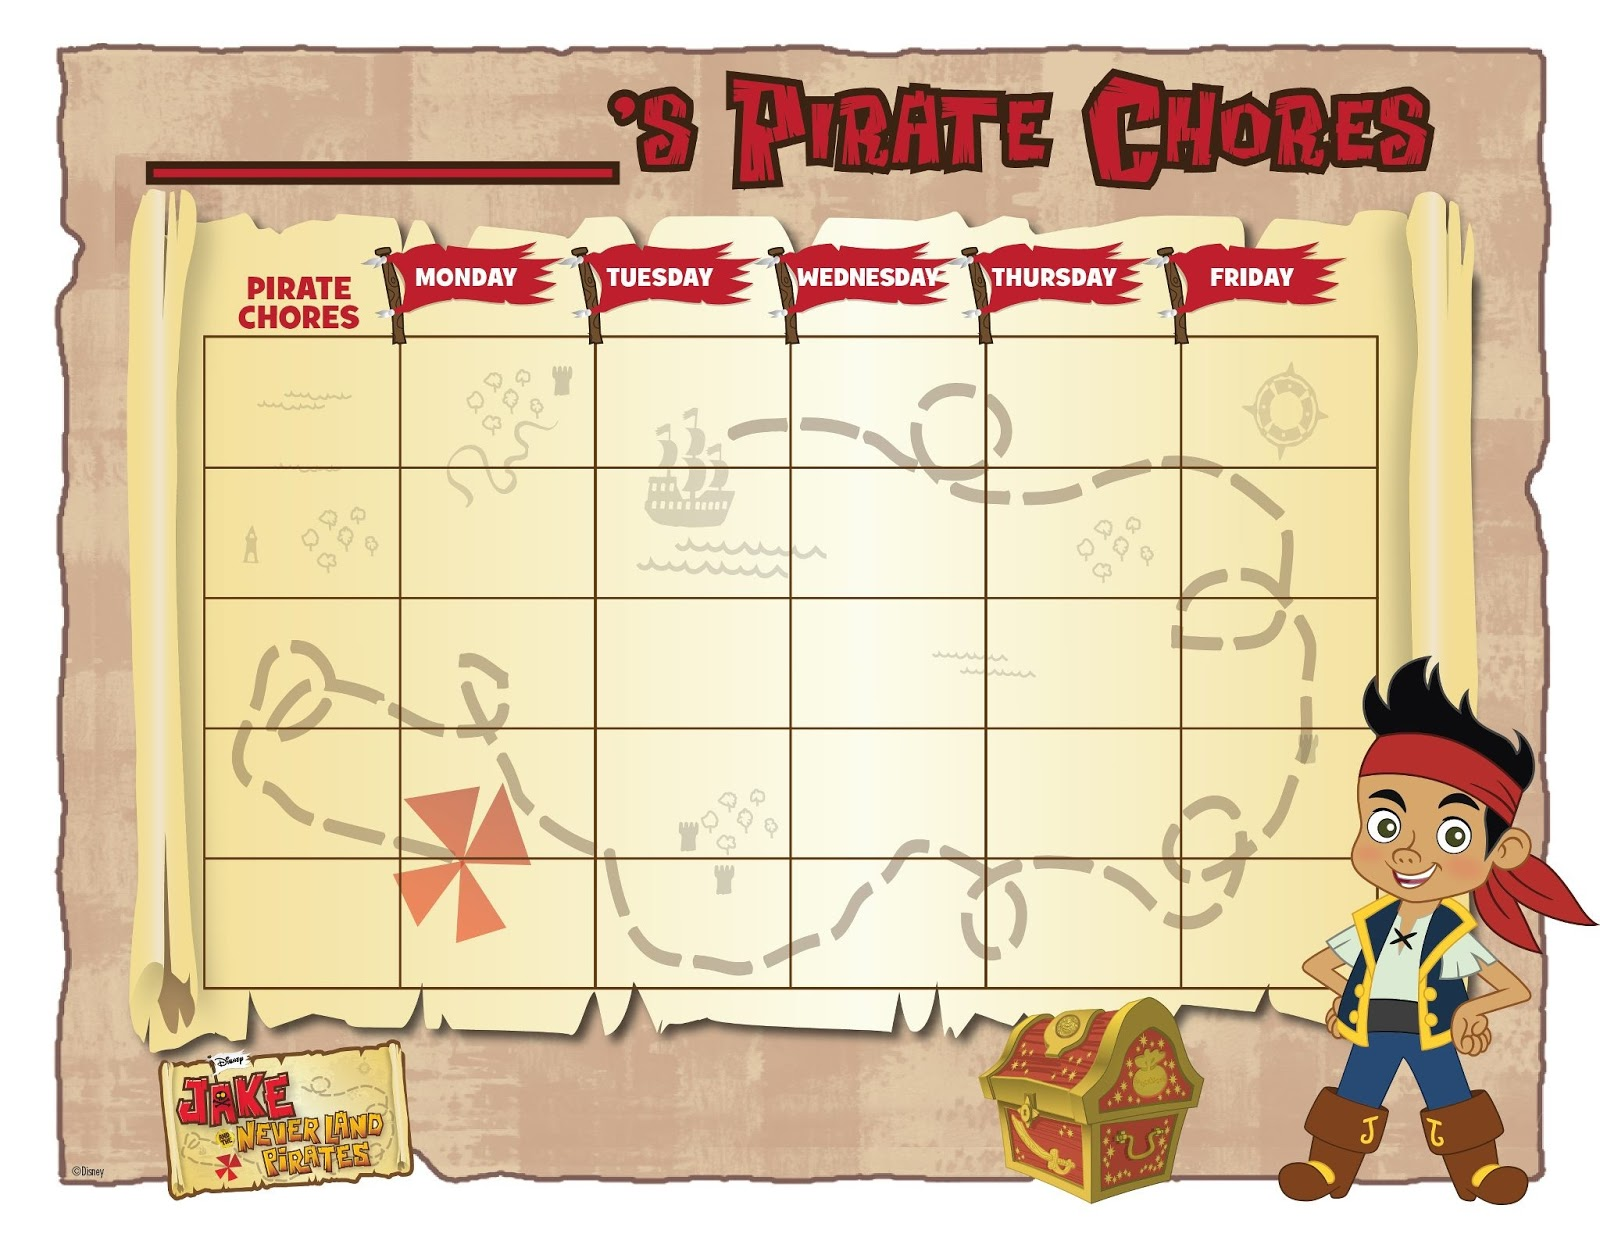 Jake and the neverland pirates treasure chest printable - Jake And The Never Land Pirates A Free Chore Sheet For Your Little One